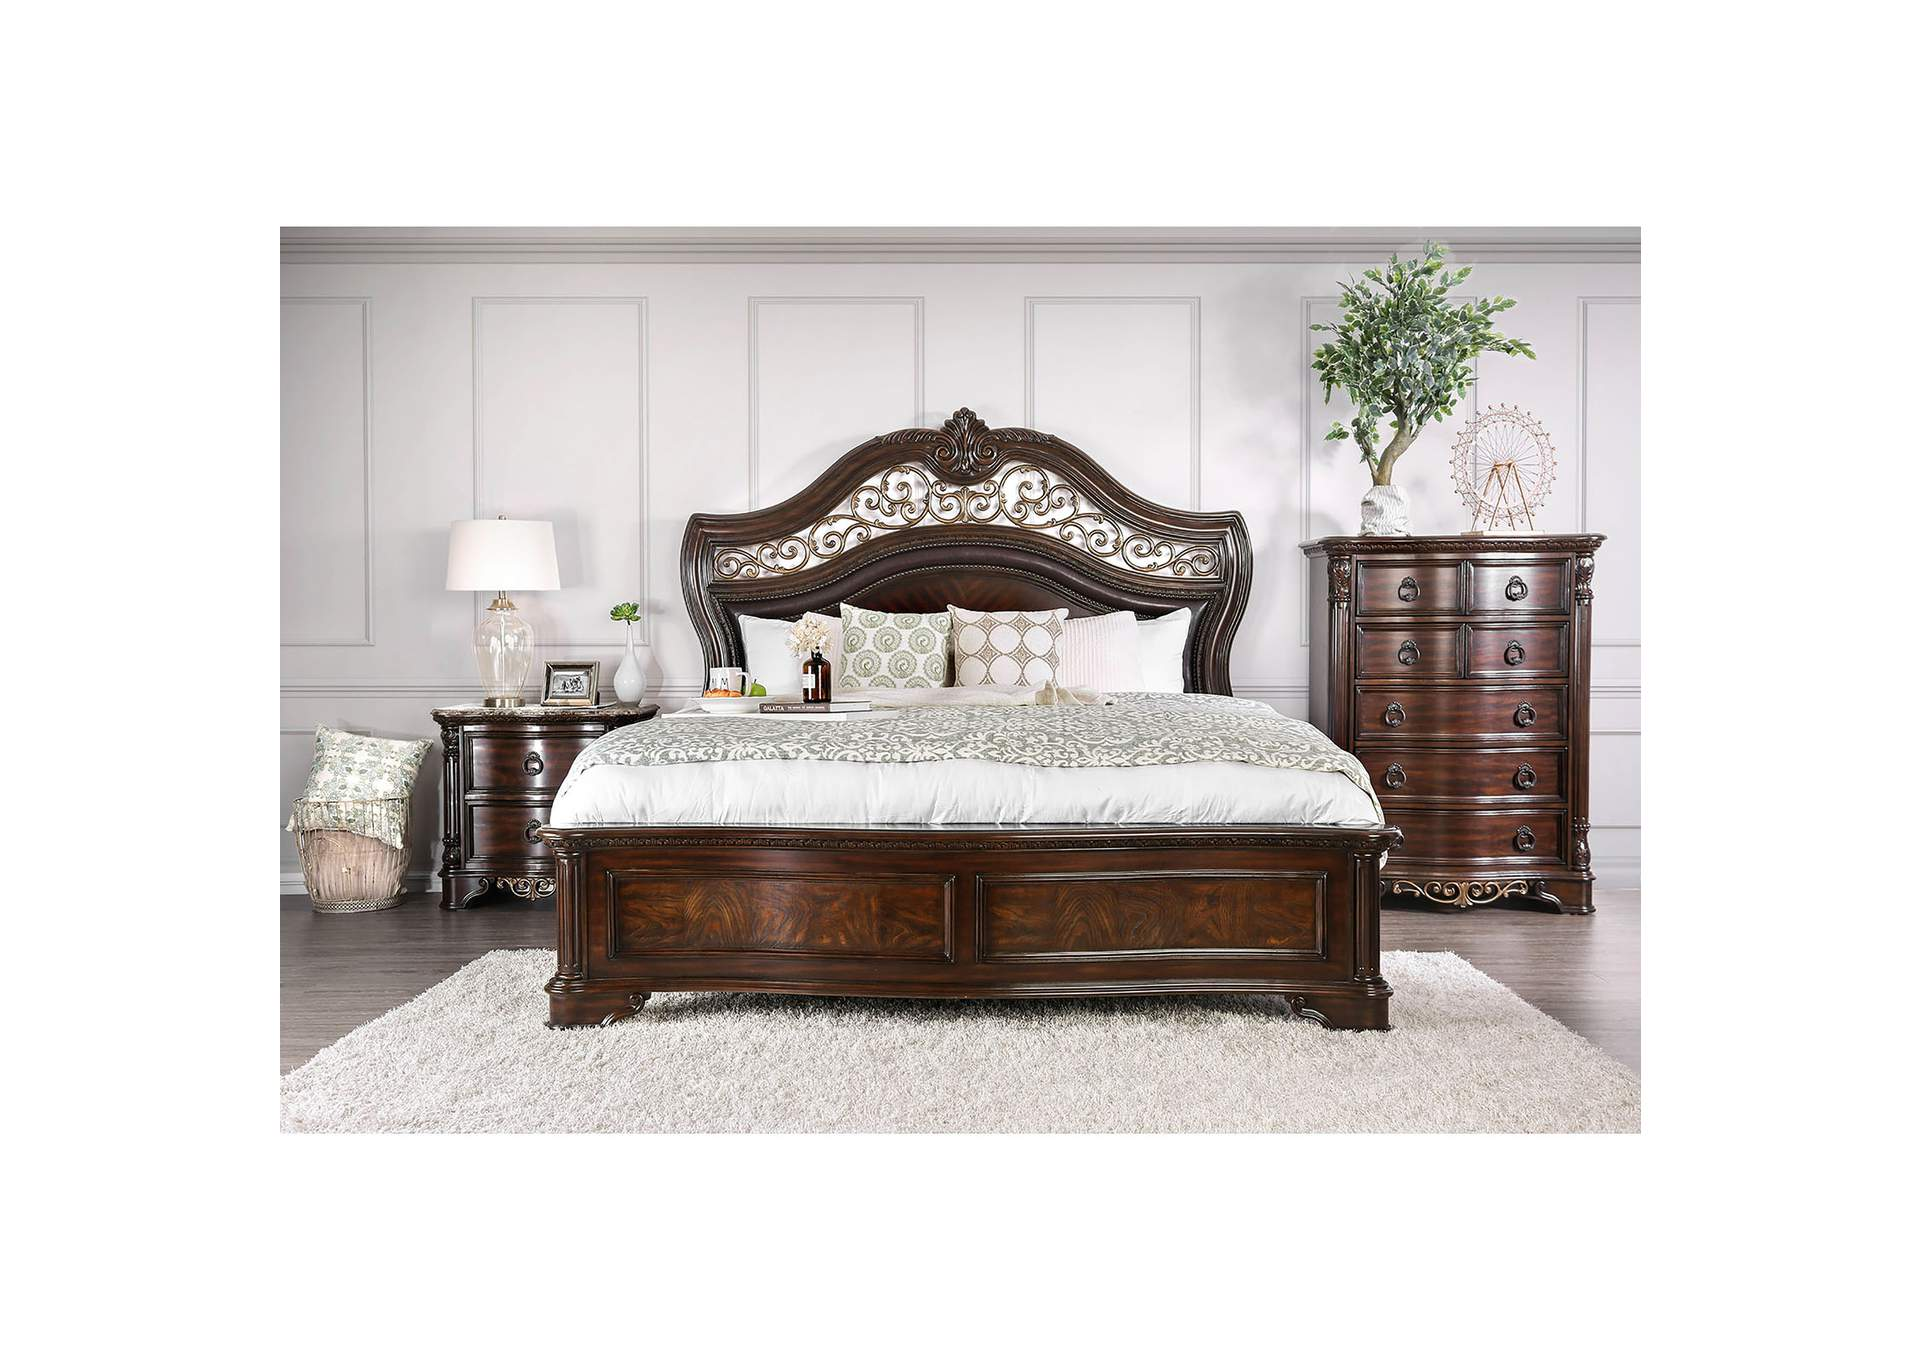 Menodora Brown Queen Platform Bed,Furniture of America